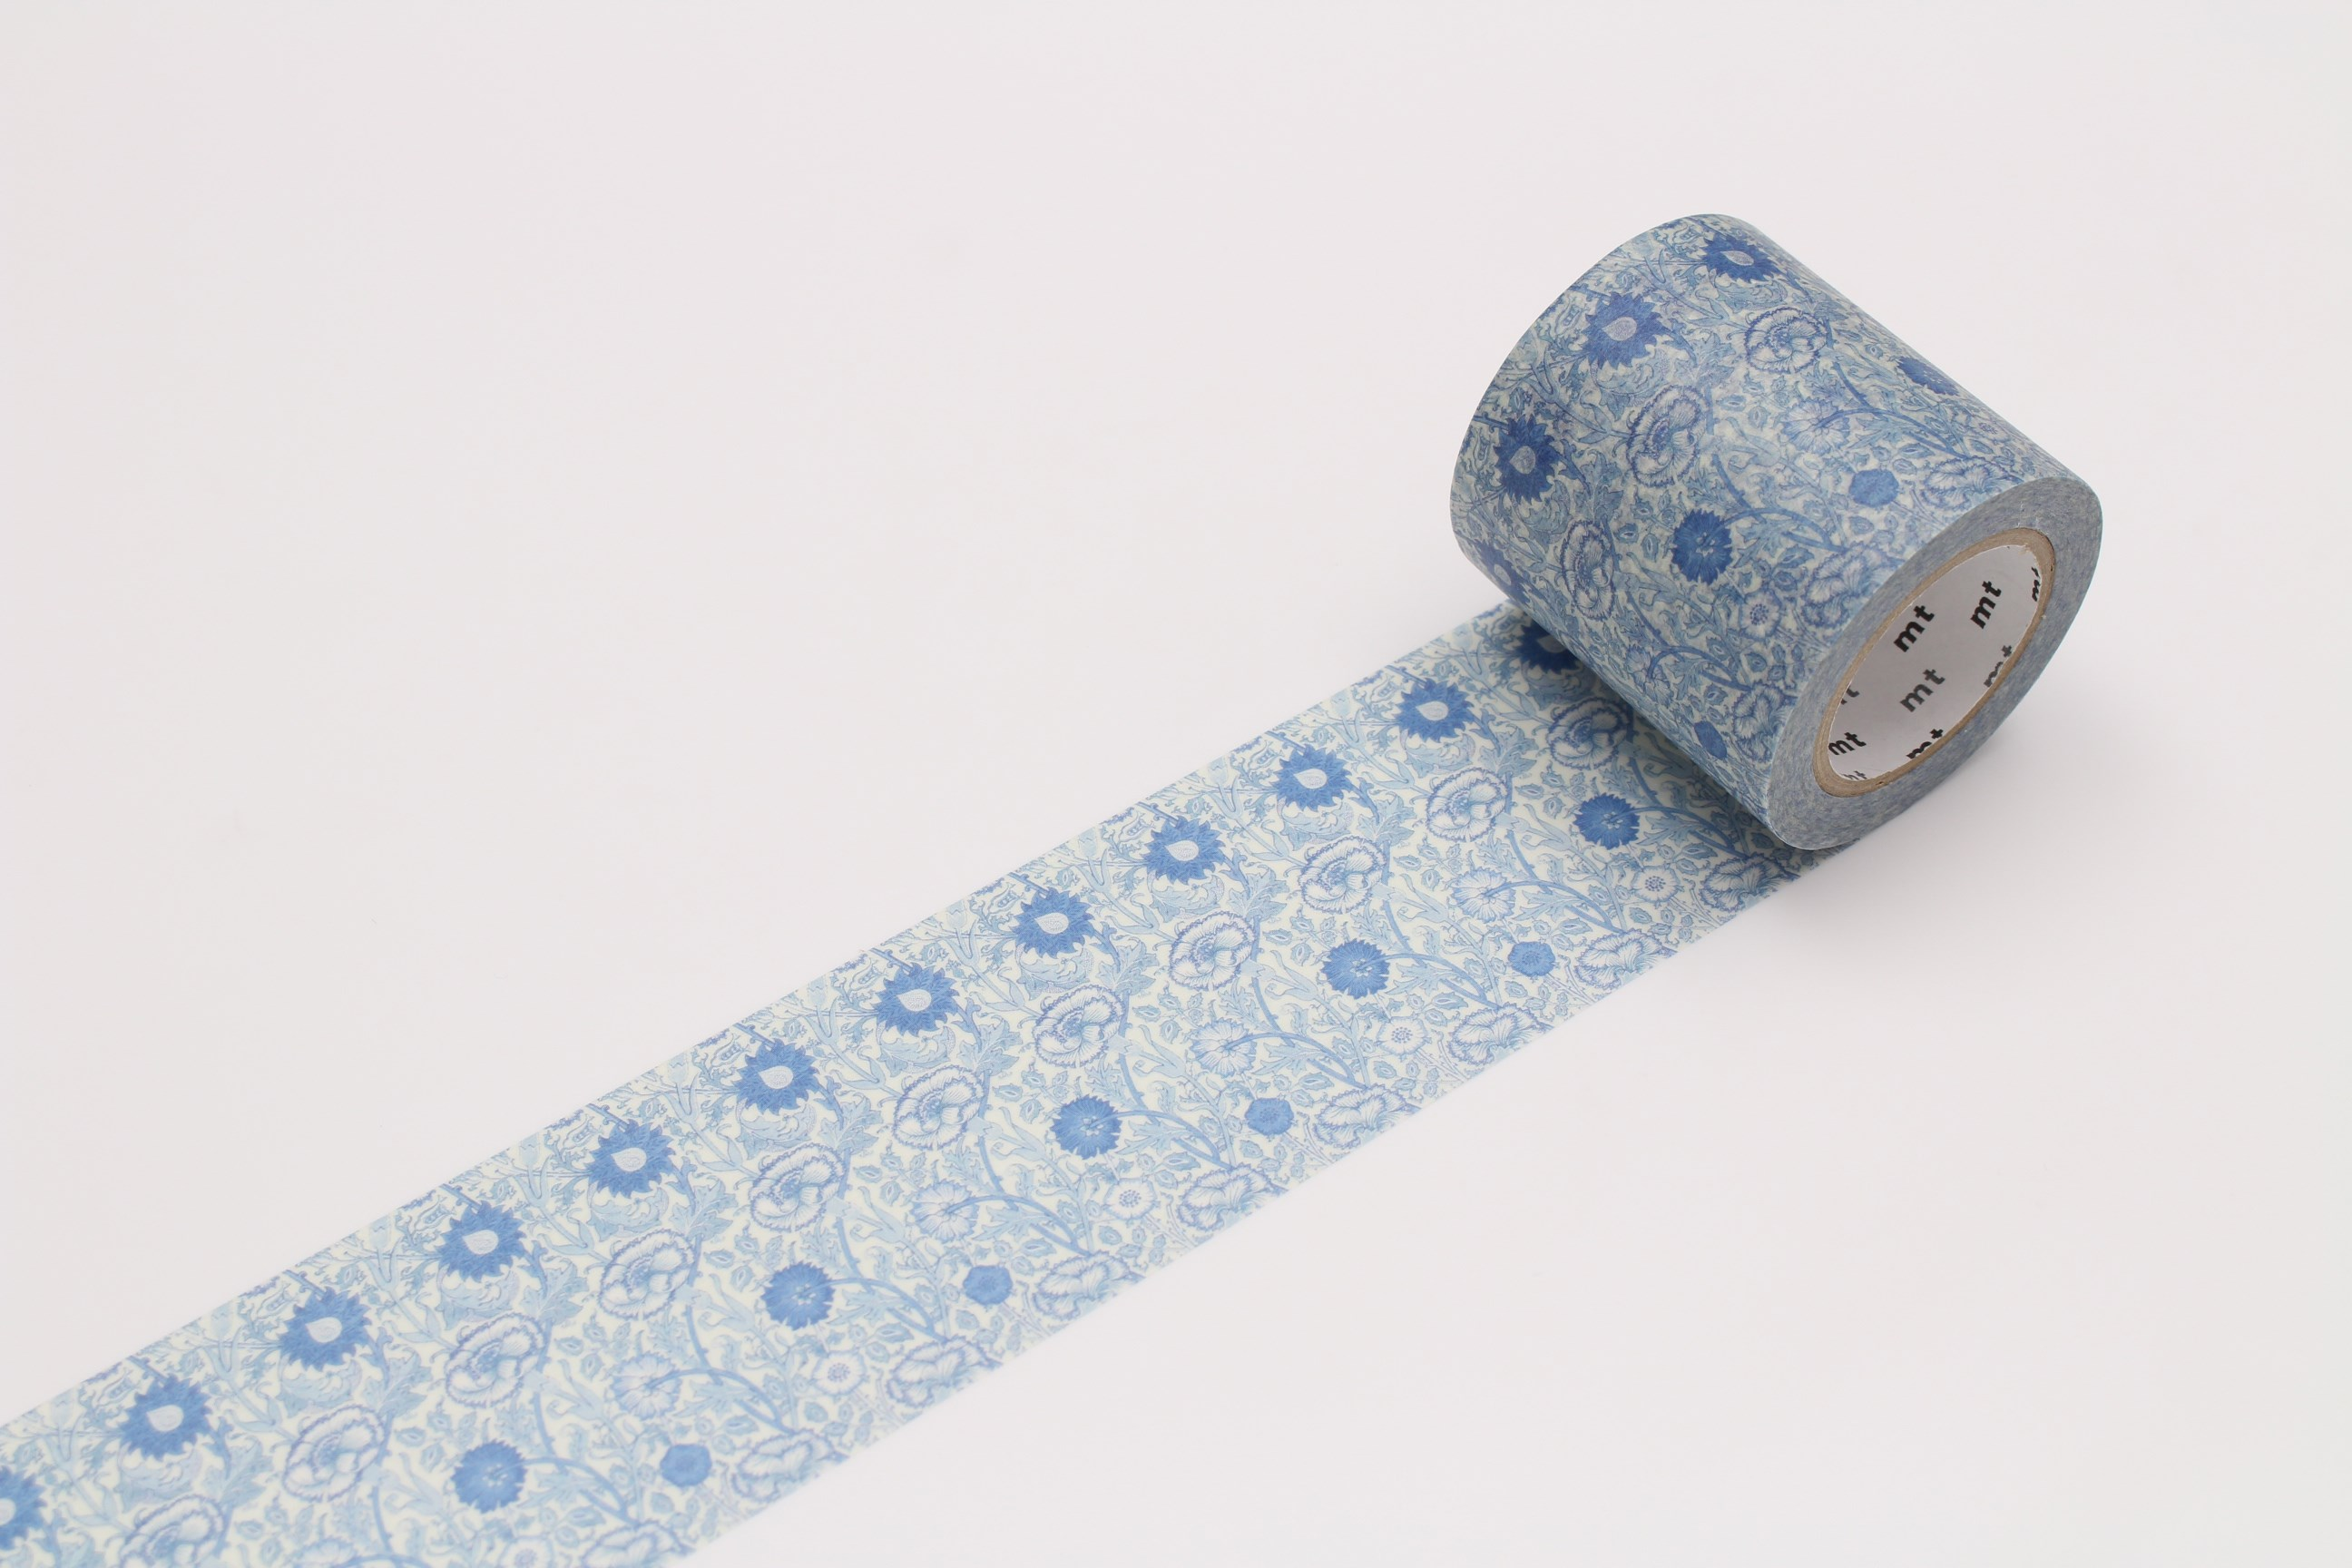 mt-masking-tape-william-morris-pink-and-rose-MTWILL01-2.jpg (1)